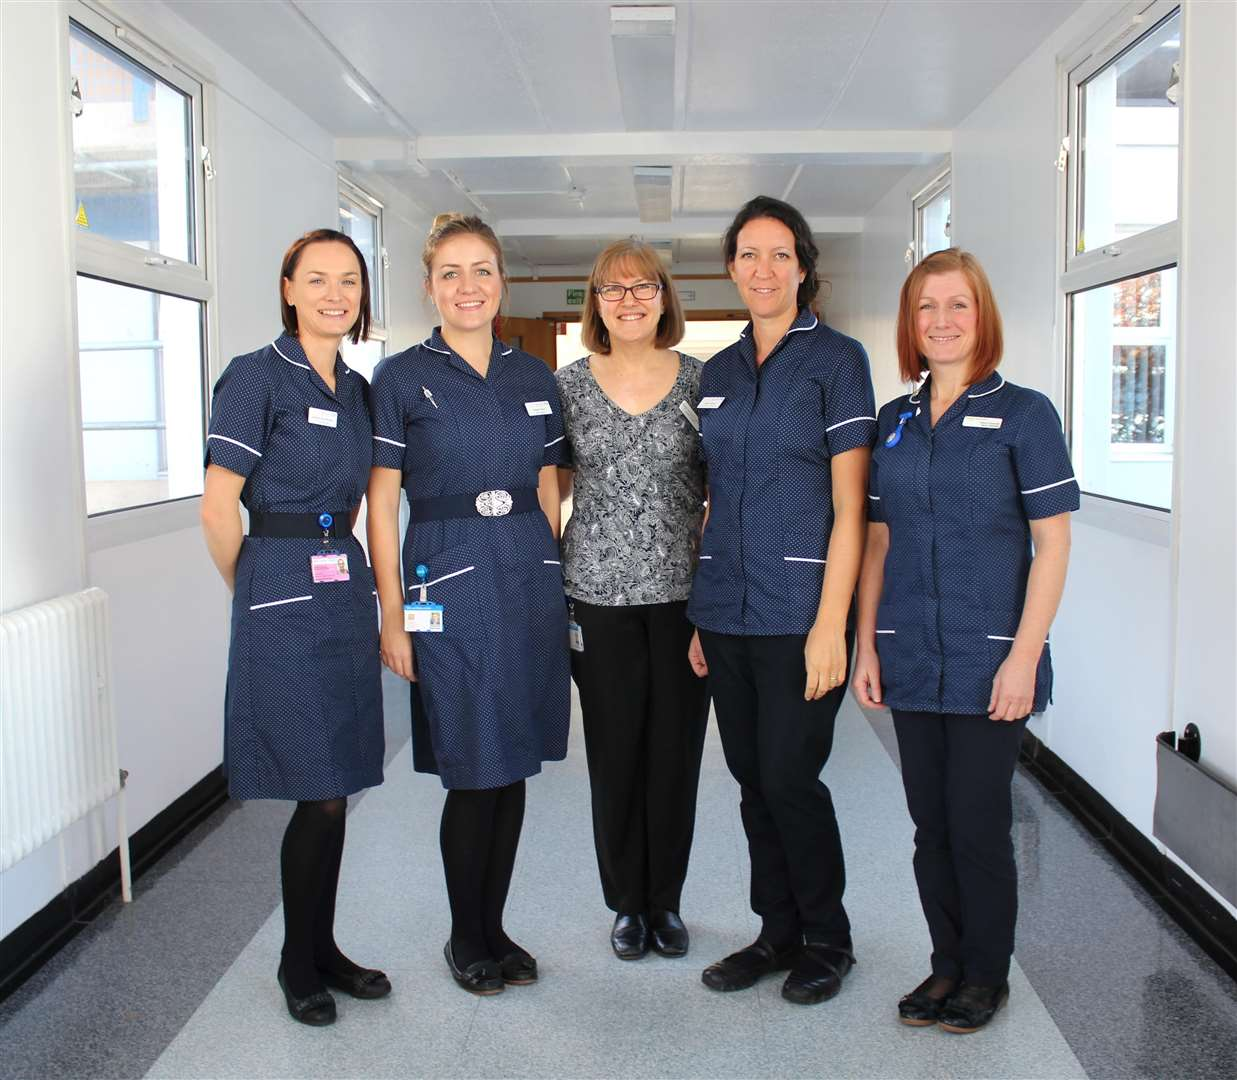 Some of the maternity team at West Suffolk NHS Foundation Trust: (From left to right) Justyna Skonieczny, maternity ward manager, Robyn Harris, senior midwife, Karen Bassingthwaighte, acting maternity outpatient services manager, Cathy Adkins, senior midwife, and Nina Fawcett, community midwives team leader. (5349341)